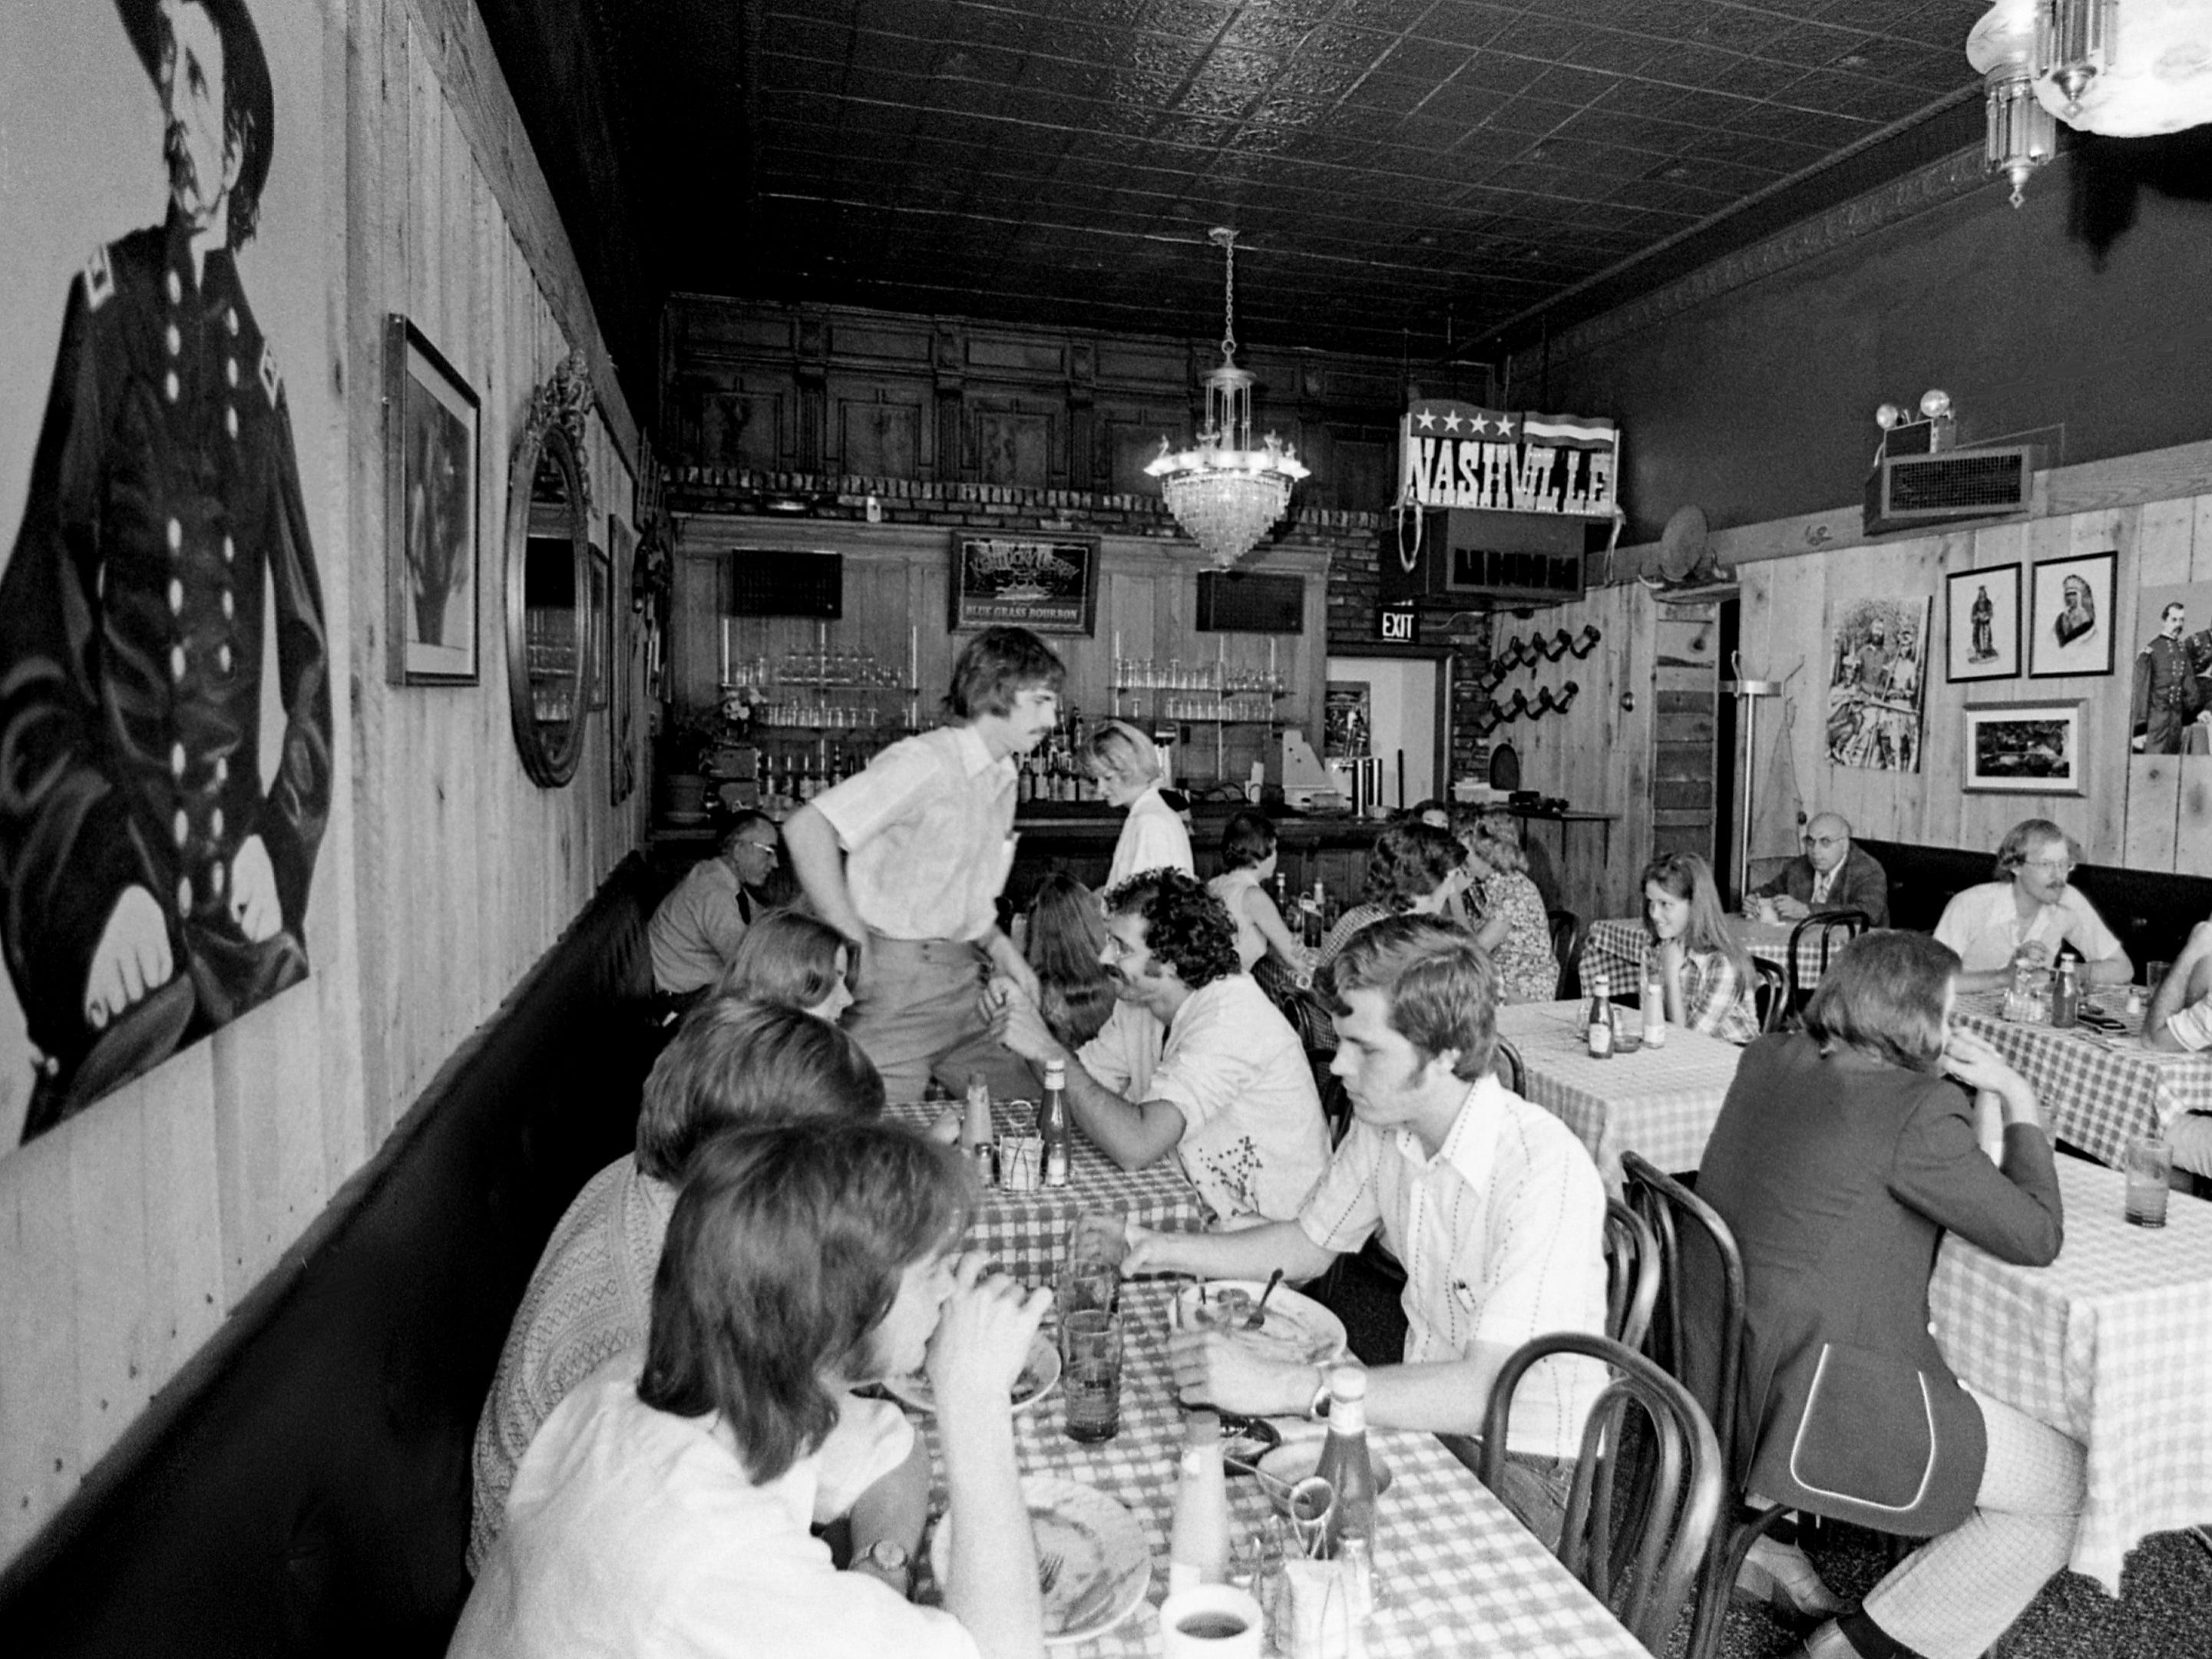 """Indian portraits, antique chandeliers and the familiar """"Nashville"""" sign from the Robert Altman film all blend in to give the Gold Rush here Sept. 9, 1976 a look straight out of the Old West. The Elliston Place establishment recently reopened its doors as an expanded restaurant."""